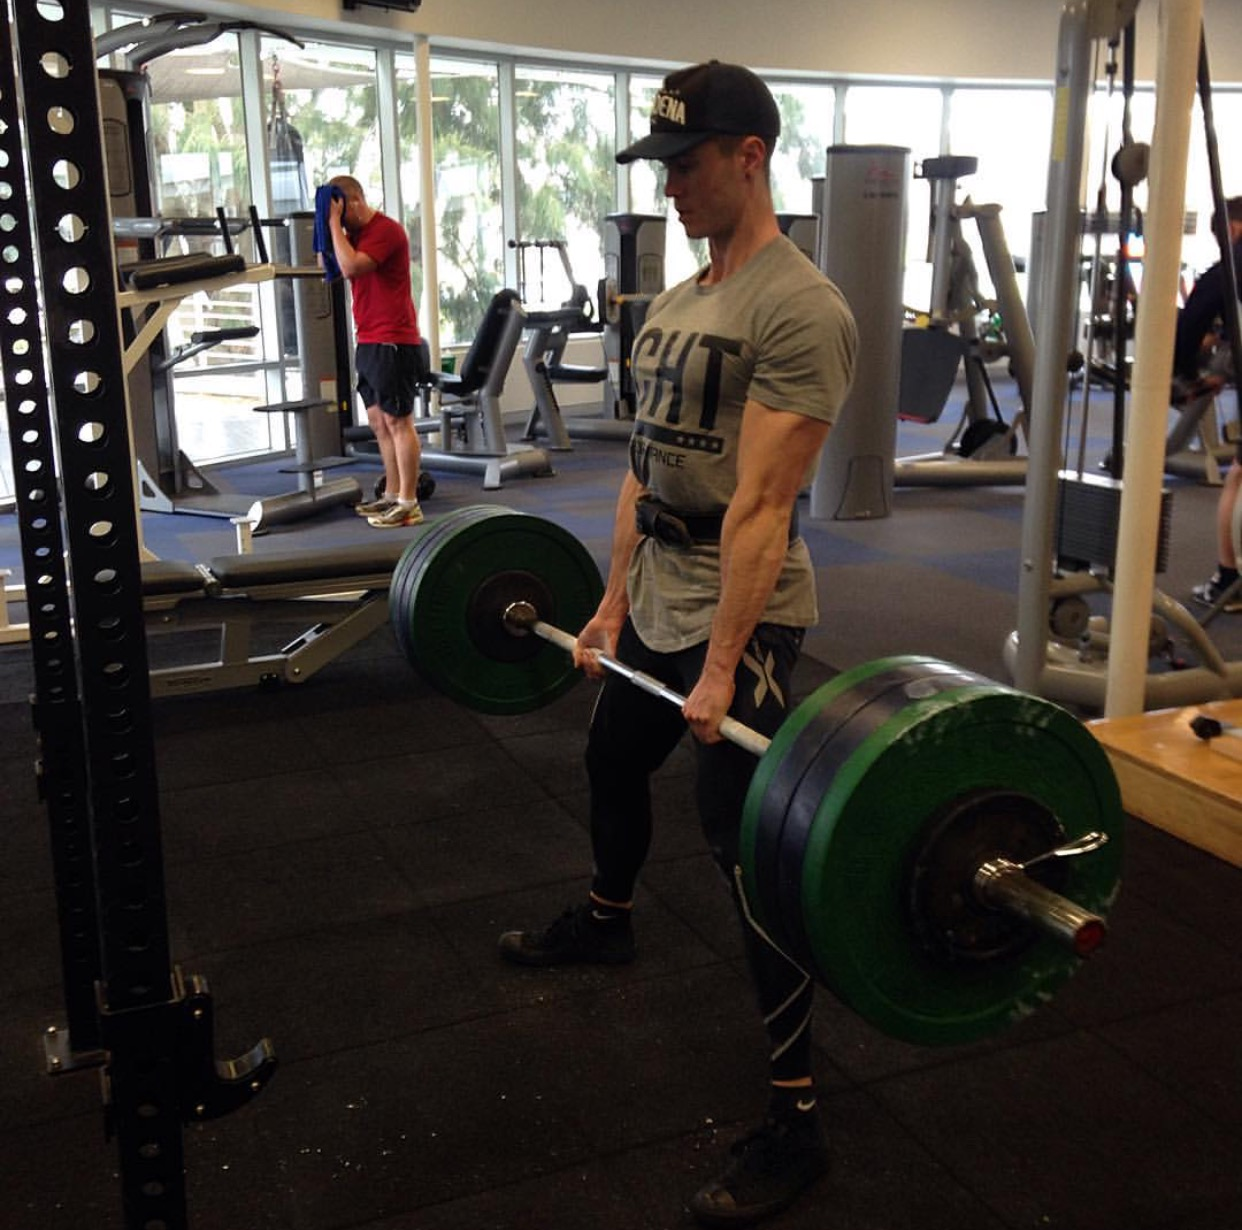 Deadlift Tips Brute Force Strength: 5 Deadlift Tips To Help Increase Your Deadlift